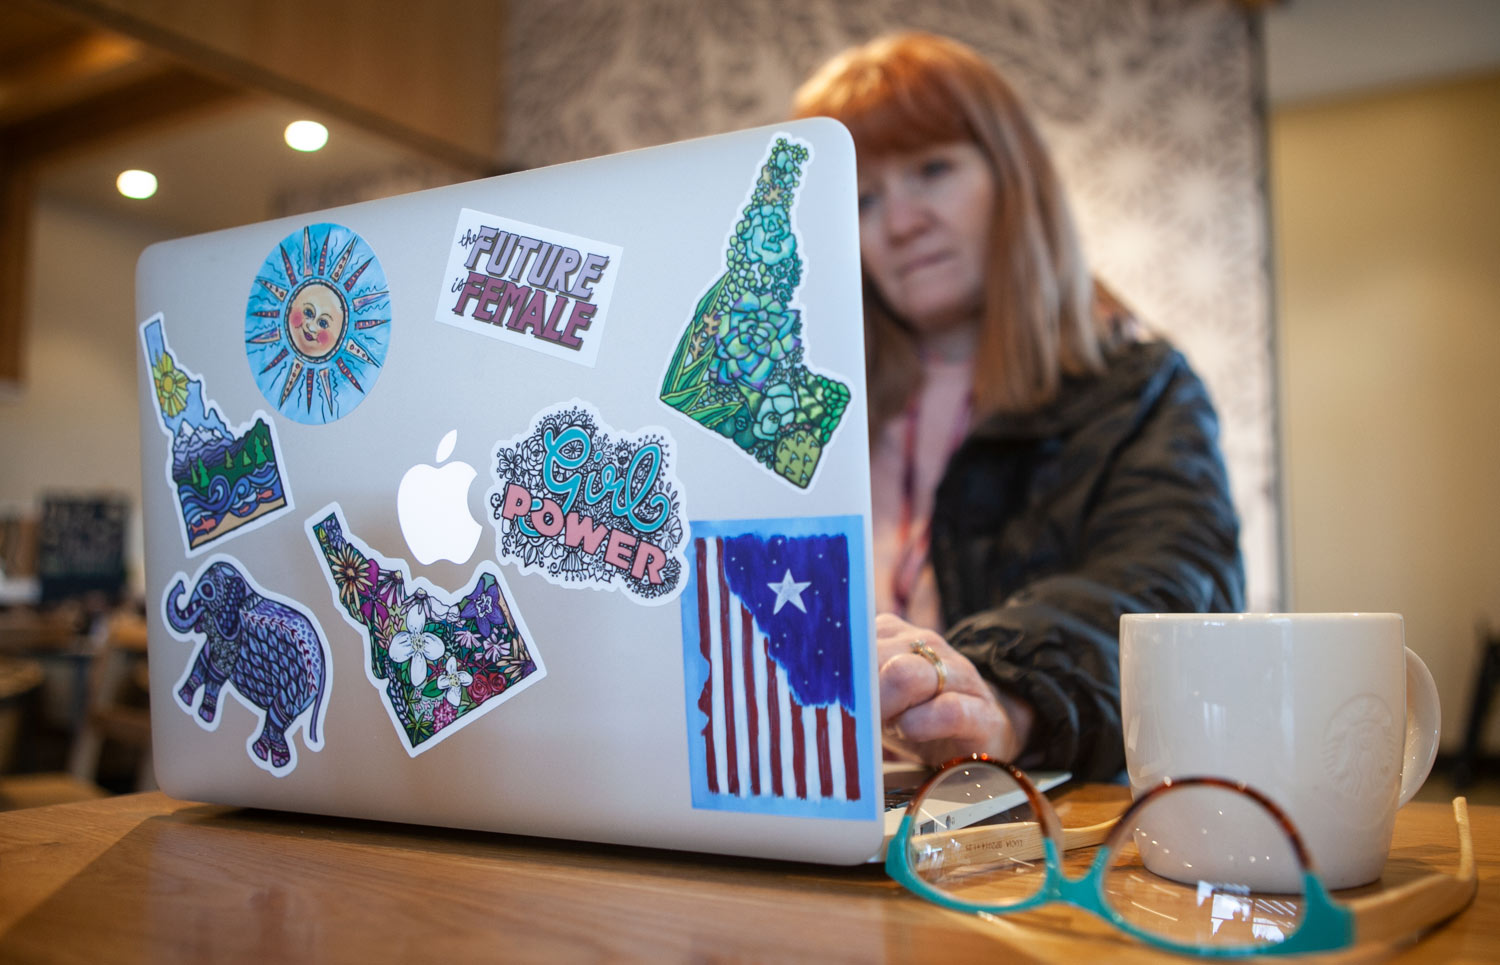 Stickers can be placed anywhere, even laptops.